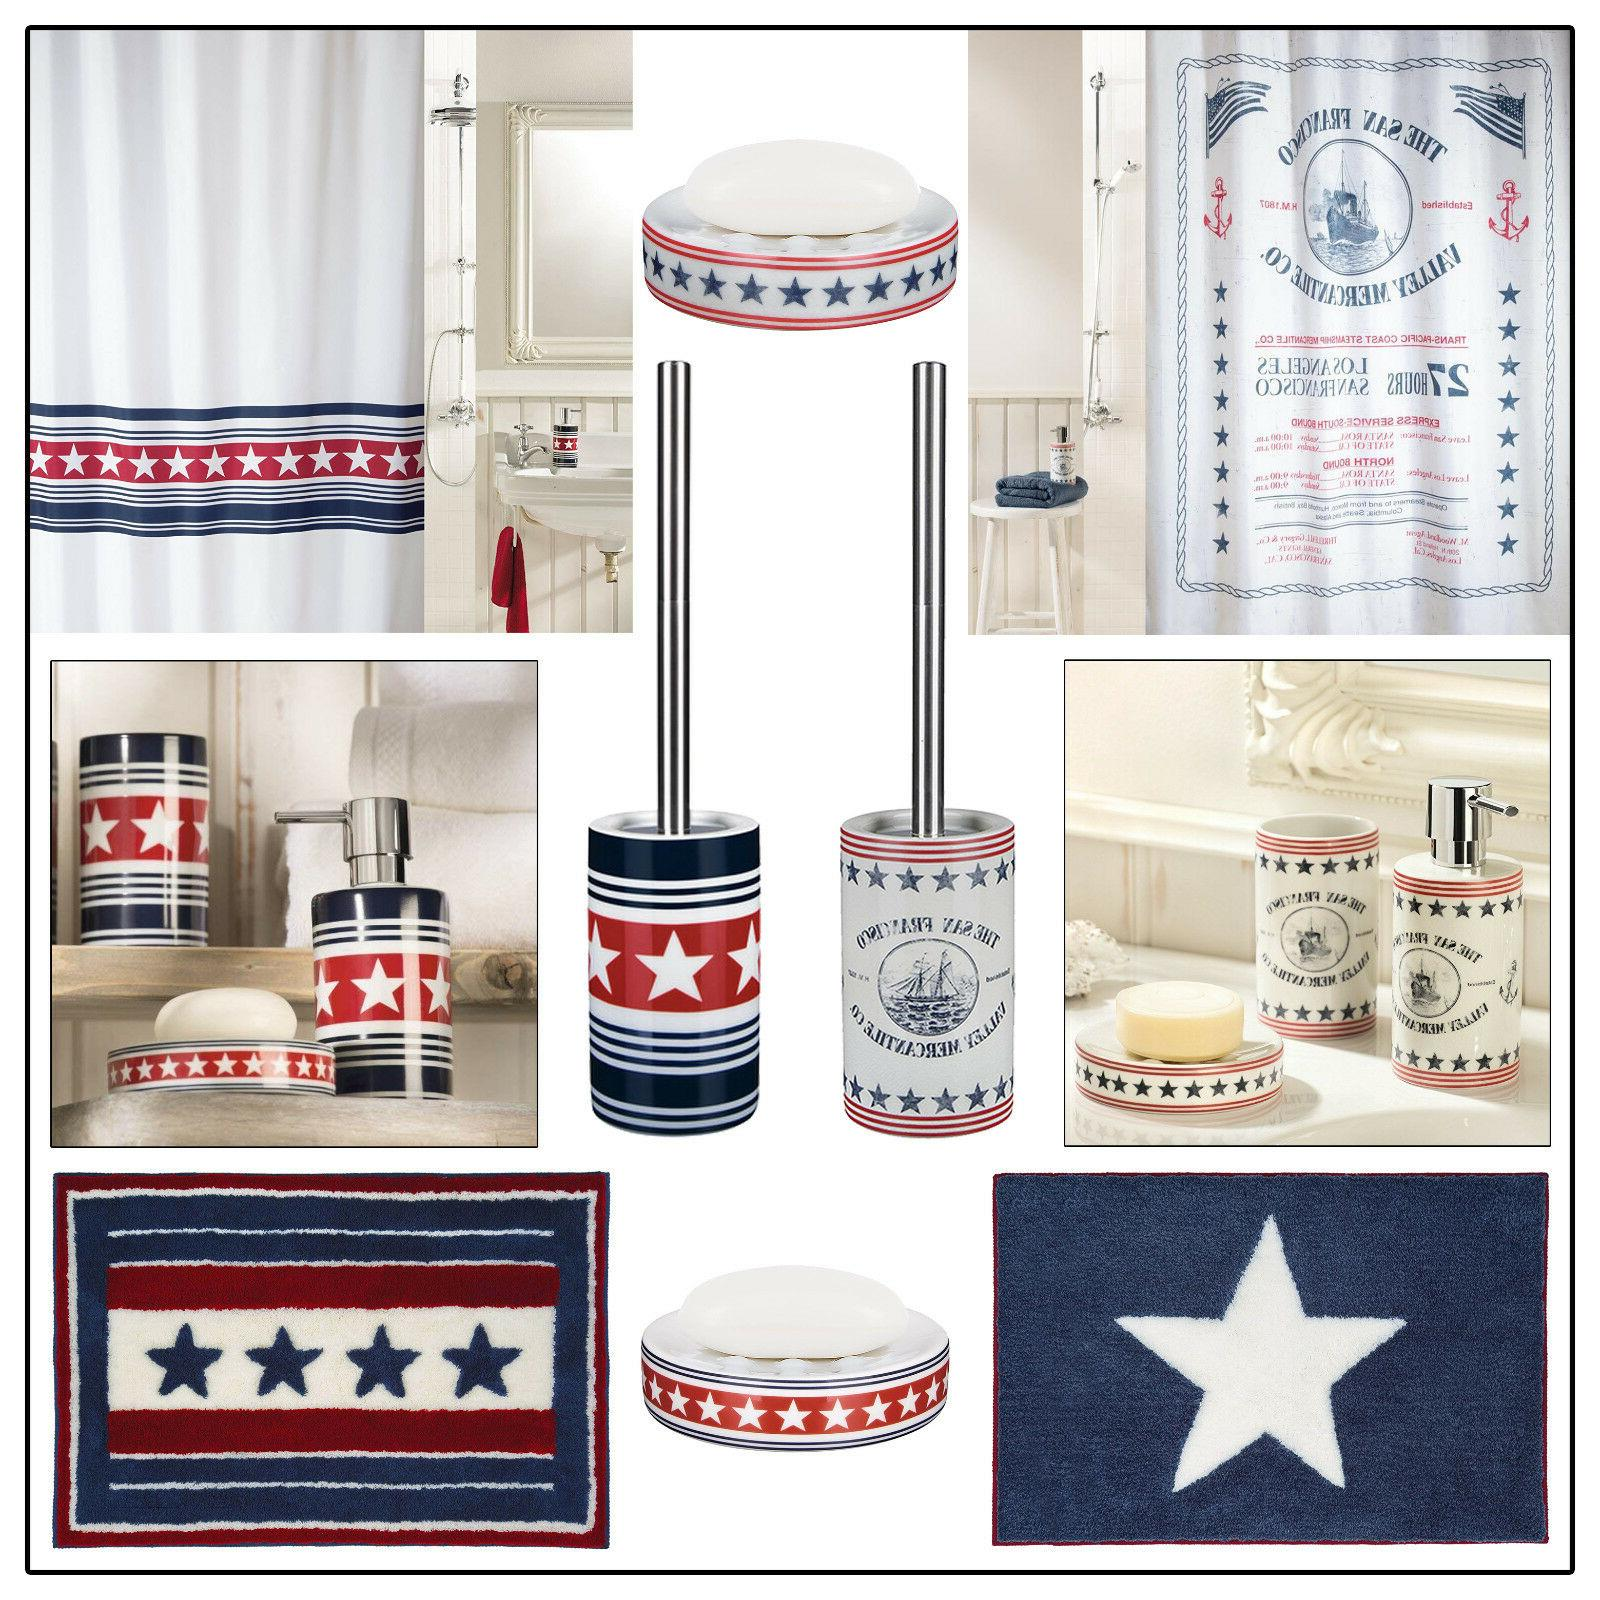 6 pc bathroom accesssory set red blue